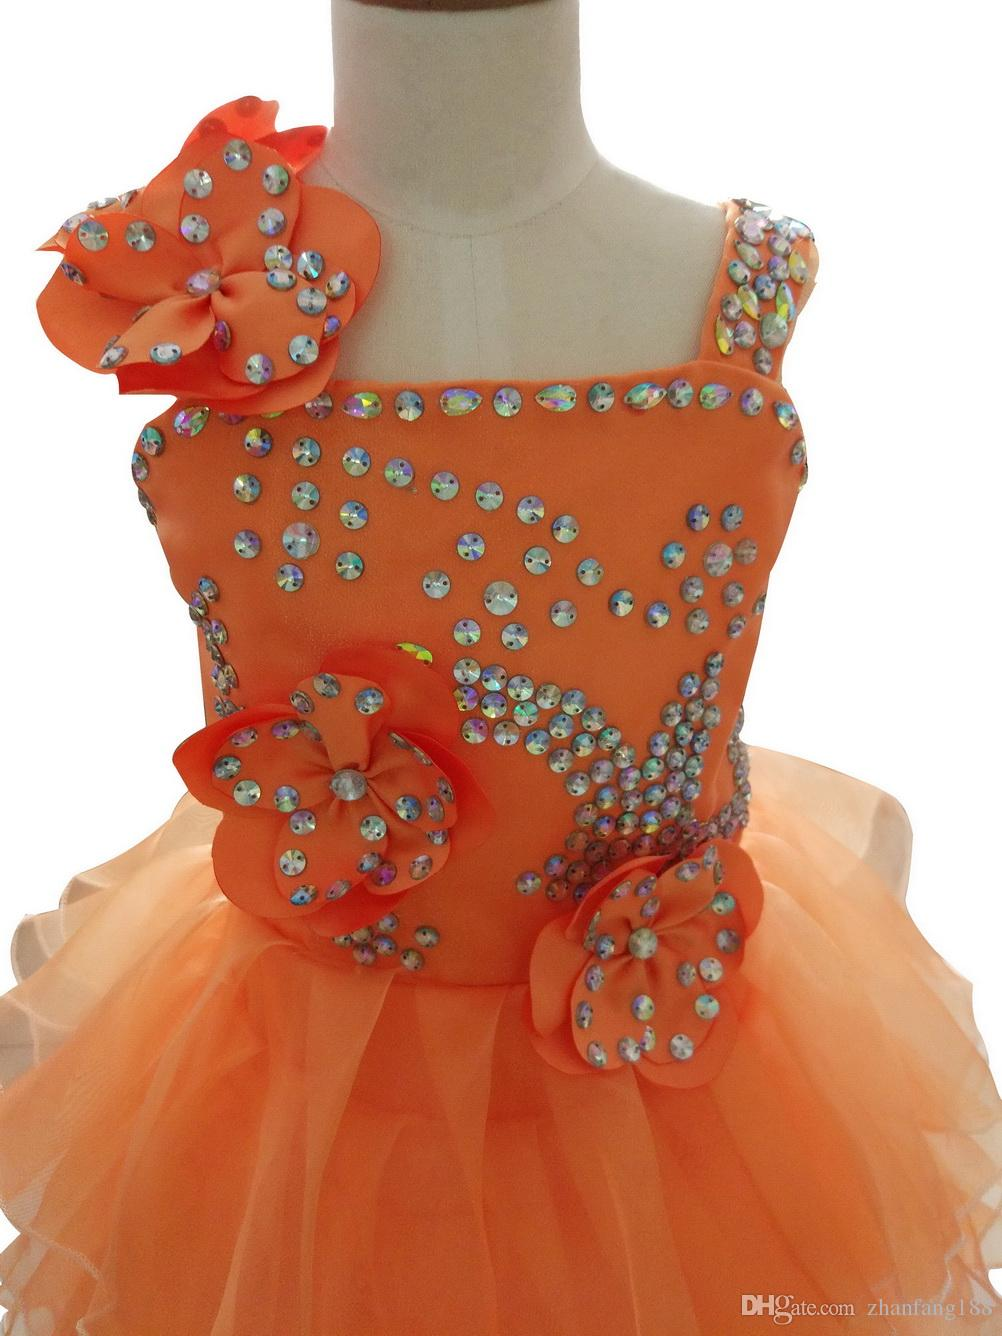 2019 New Flower Girl Dress Children/Kids Girl's Pageant Evening/Prom/Communion Dress/Gown for Birthday Wedding Bridal Gift Party